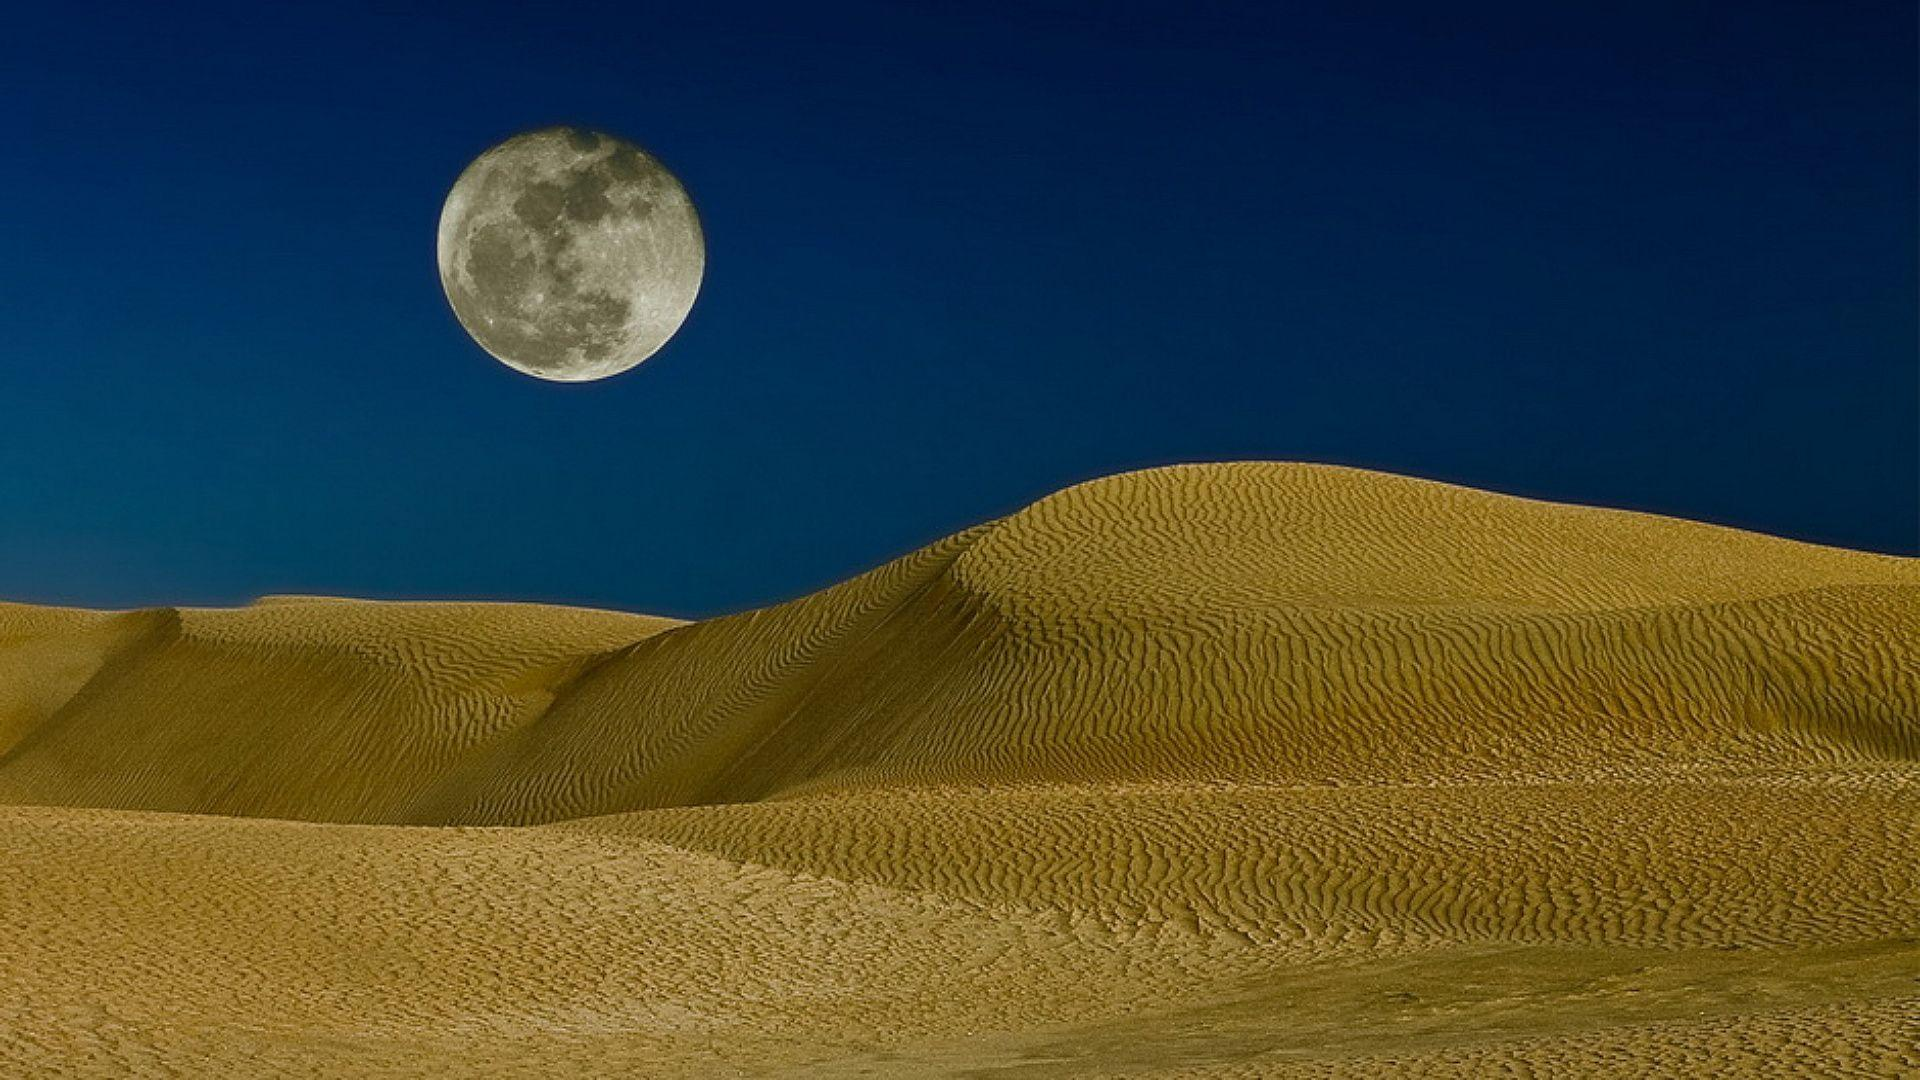 Moon over the sand dunes wallpapers and image